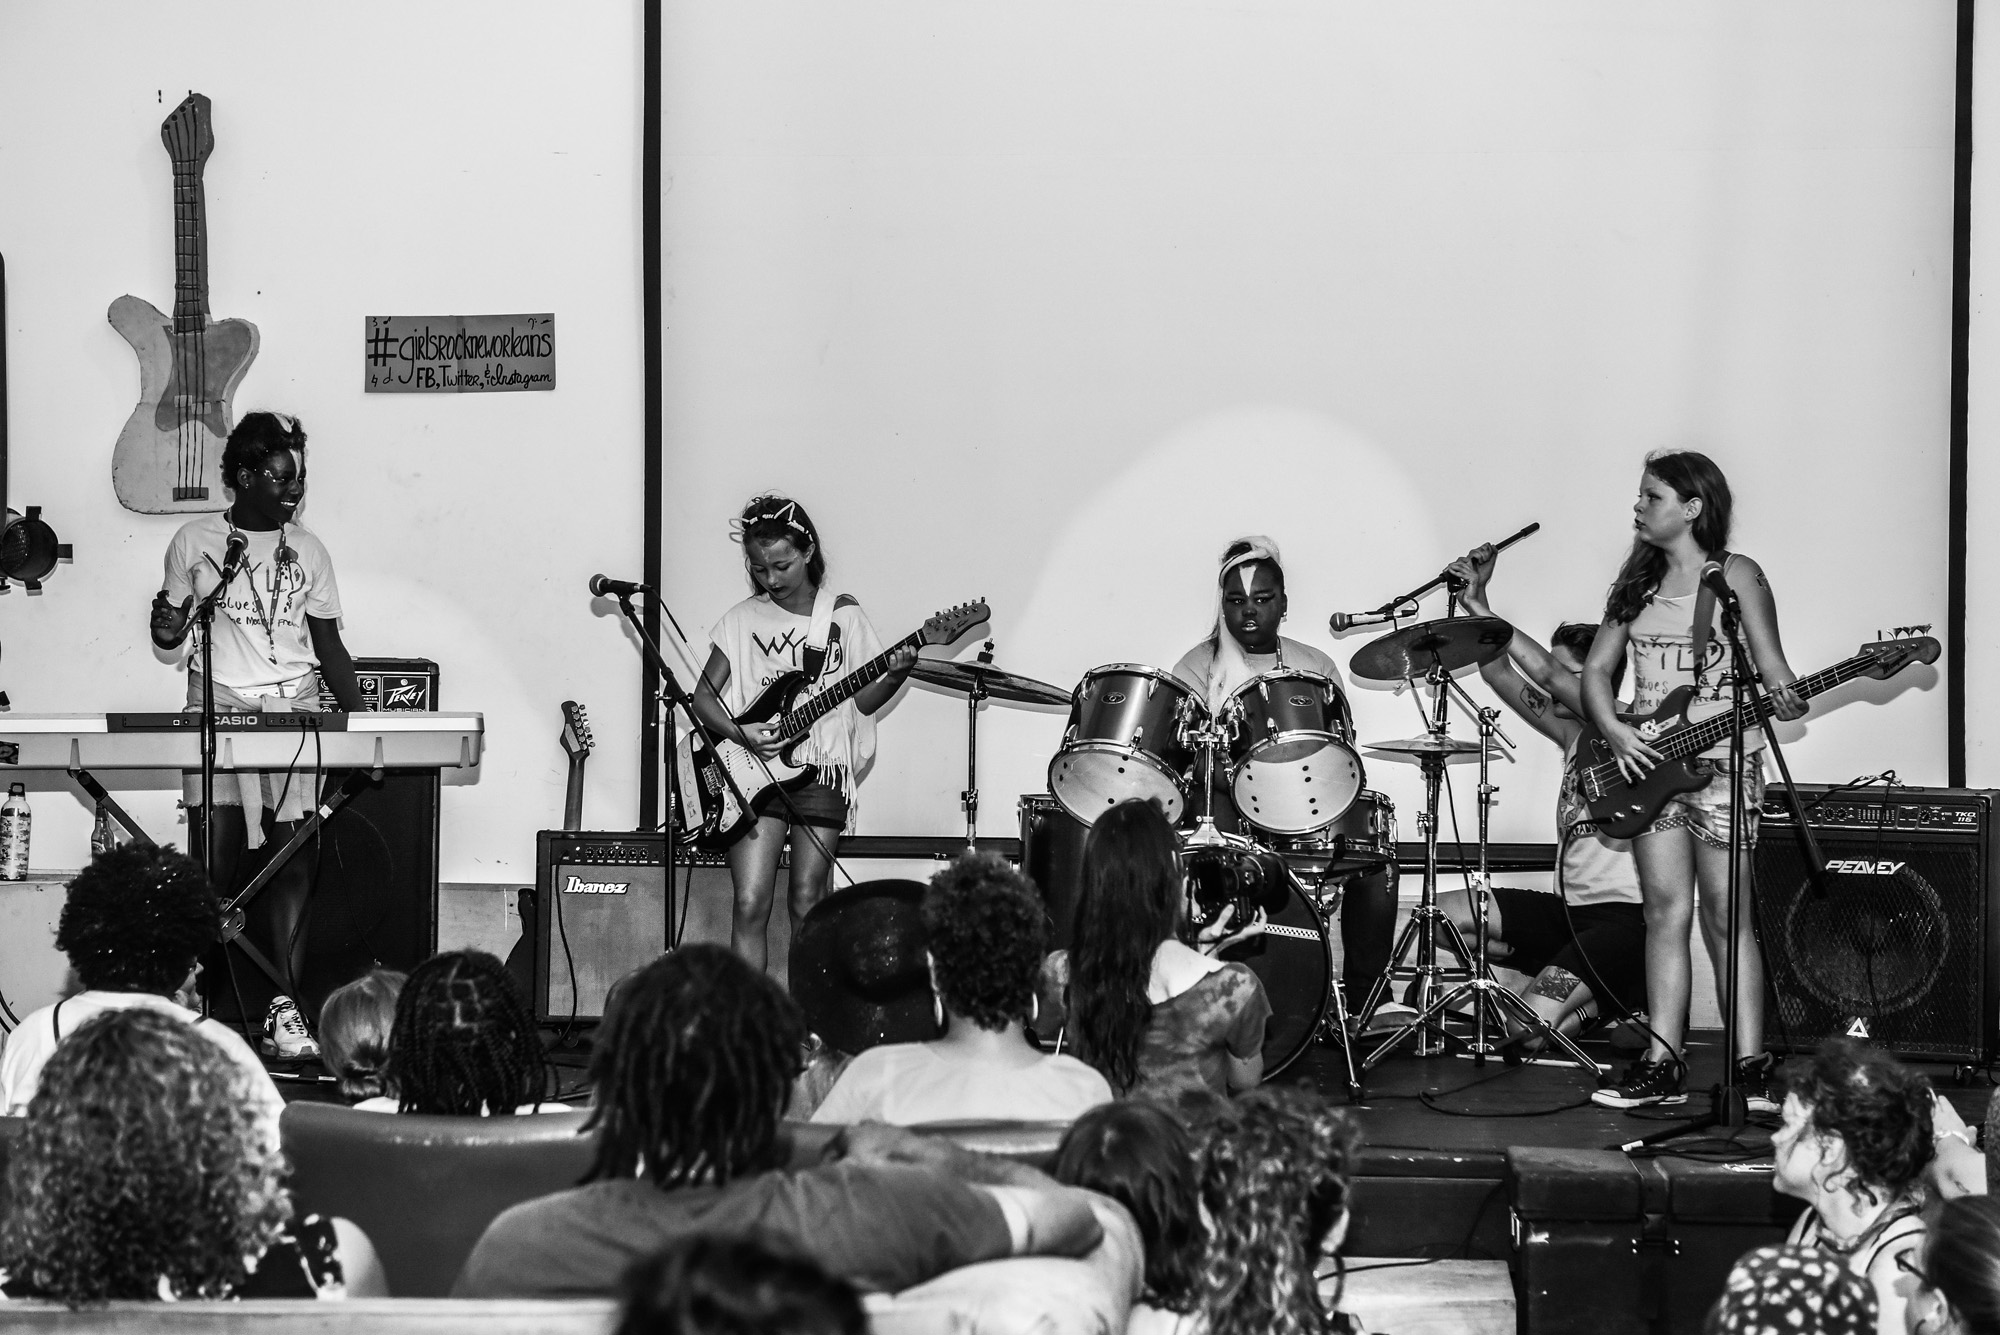 NEW ORLEANS, LA - June 18, 2015: Girls Rock! Camp in New Orleans (photo by Adrienne Battistella, 2015. All Rights Reserved.)